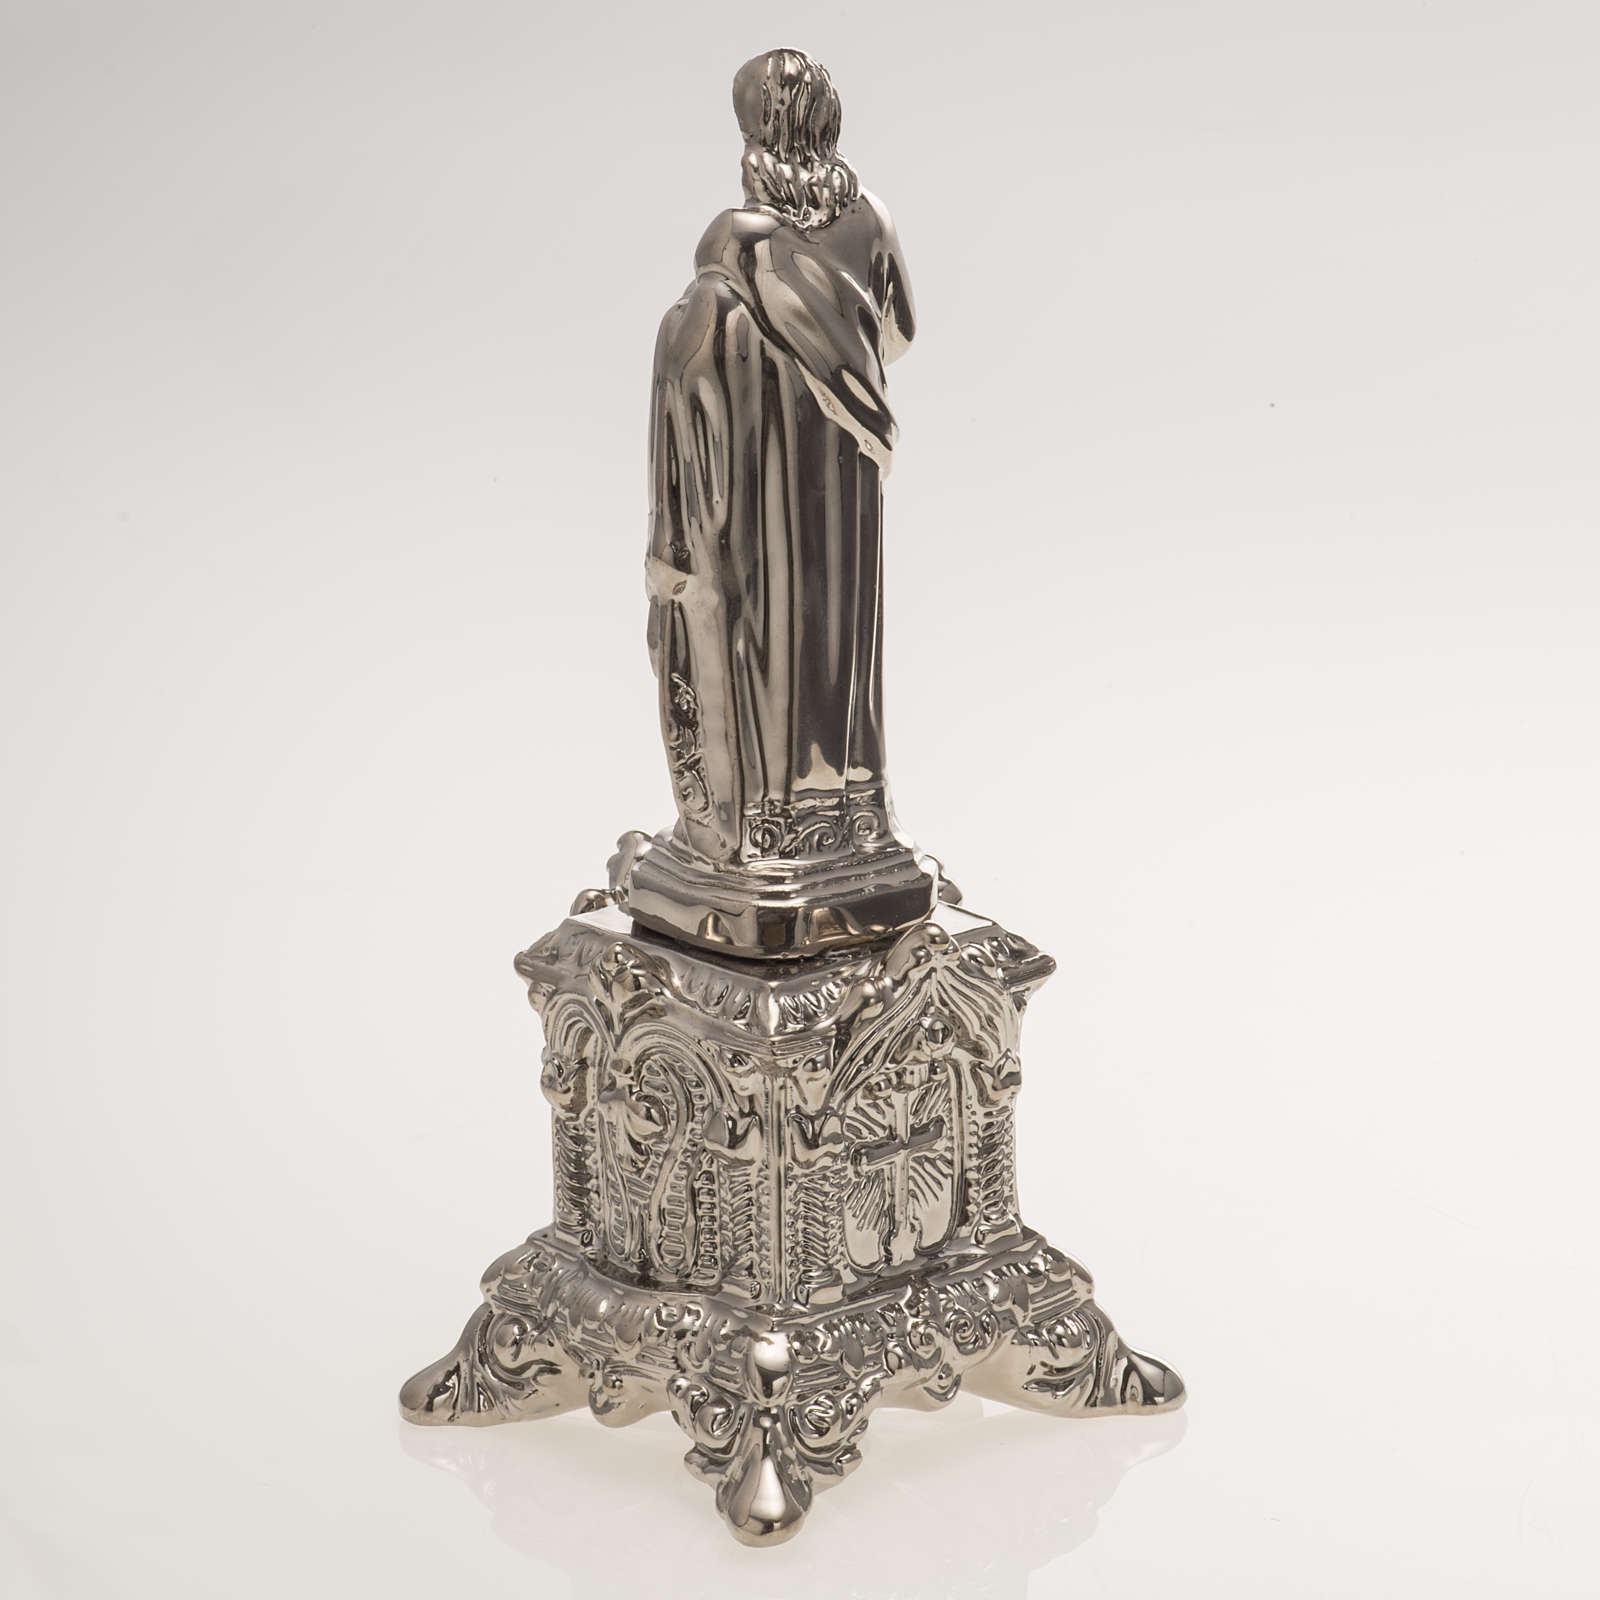 Ceramic statue, platinum colour, Sacred Heart of Jesus on throne 4